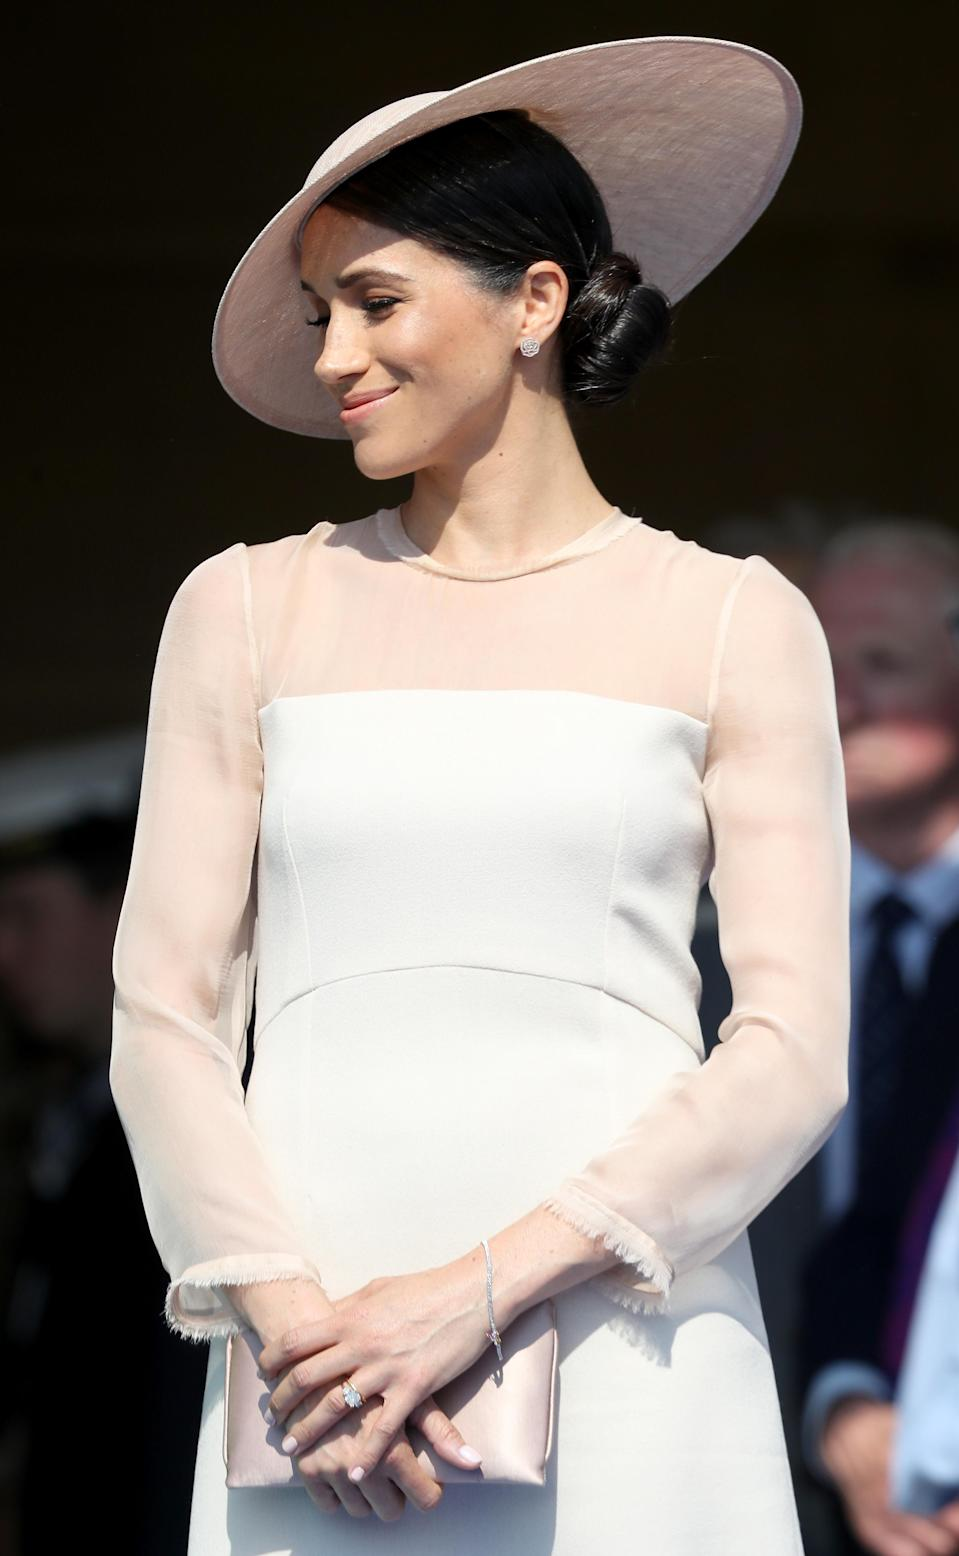 <p>For her first royal enagement since getting married, the Duchess went demure in a pale pink dress by Goat which actually caused the brand's website to crash. She paired the dress with a custom Philip Treacy hat, nude tights, the Oyster Silk Clutch by Wilbur and Gussie and matching peach-hued Aquzzara pumps. Some said Meghan's far more polished look (and hello: <em>tights</em>) singalled her newfound royal status. <em>[Photo: Getty]</em> </p>